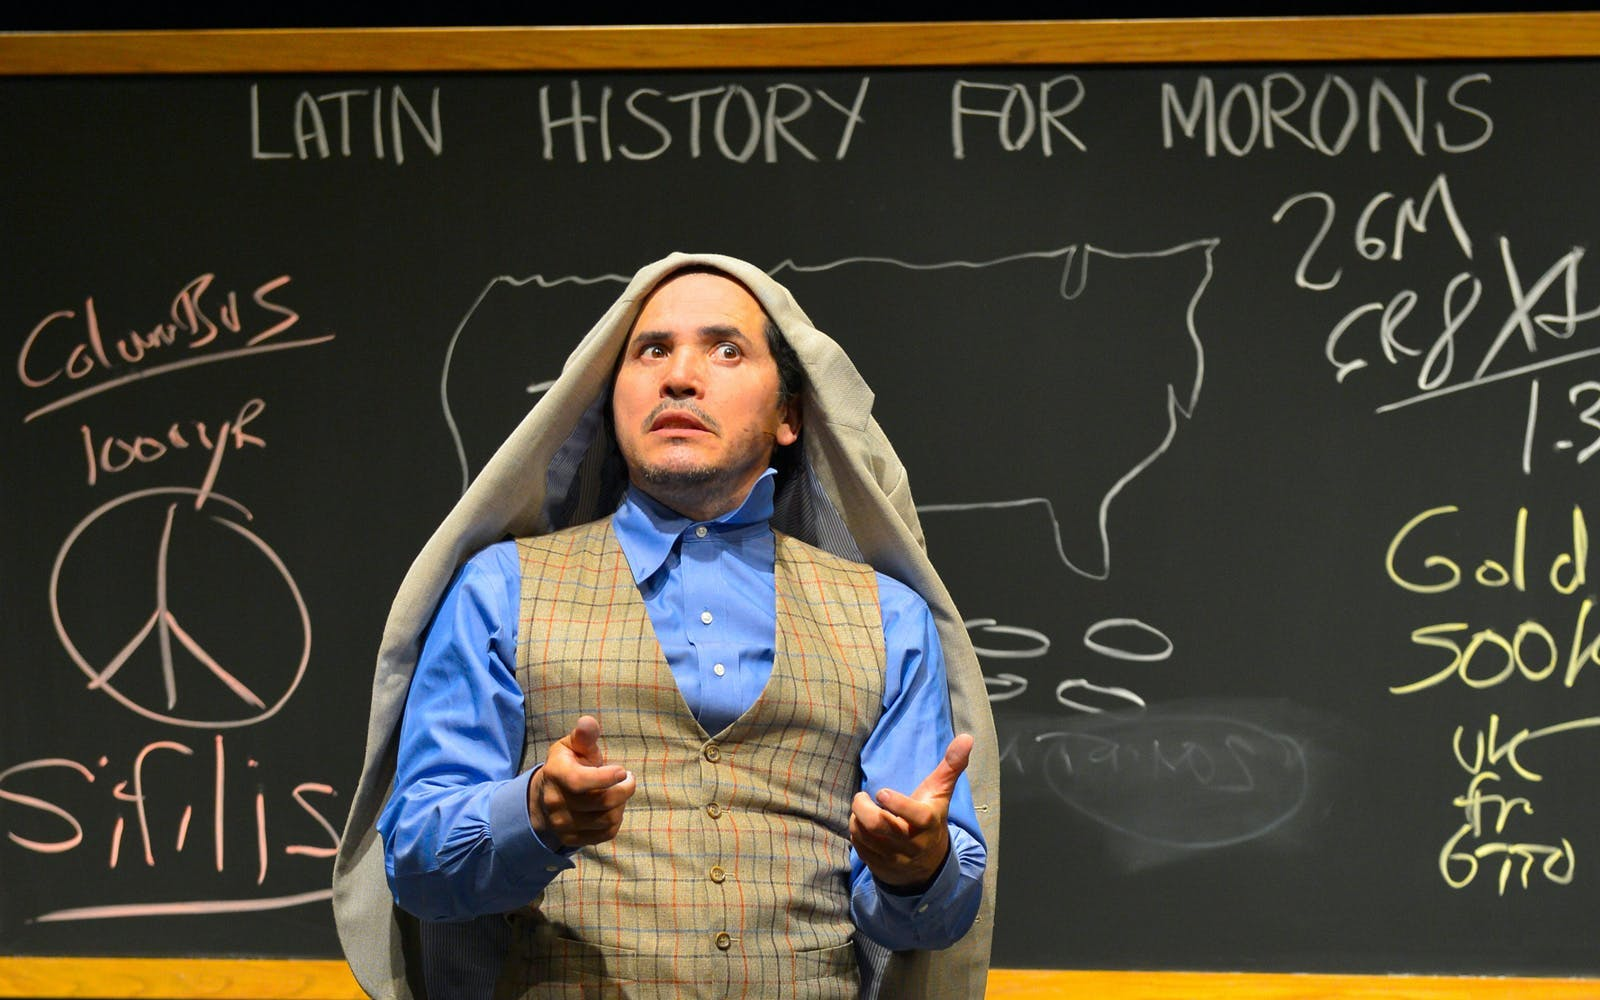 latin history for morons-2